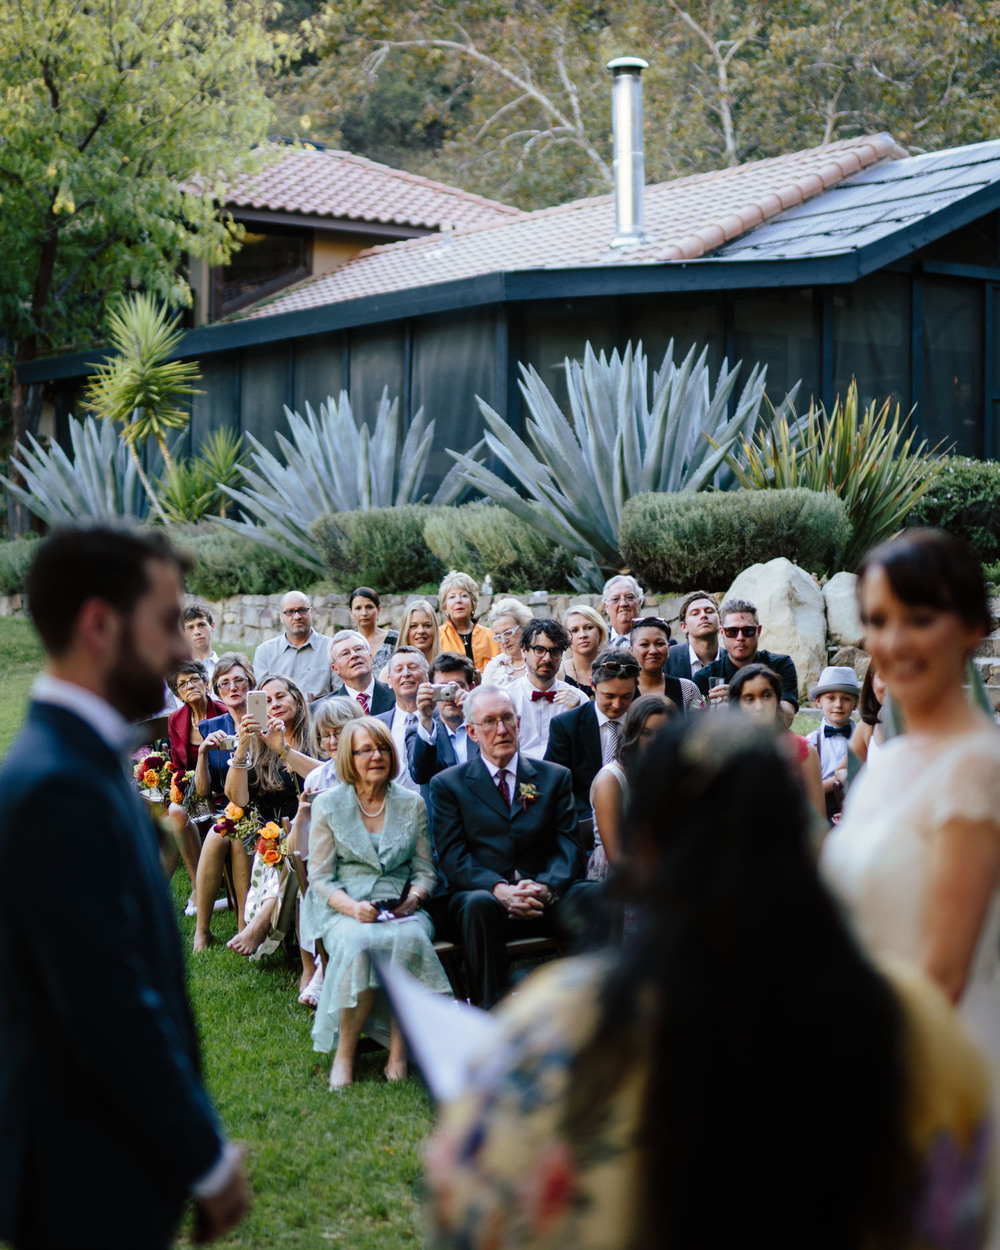 Ojai Wedding Photographer, Calliote Canyon Wedding - The Gathering Season x weareleoandkat 037.JPG